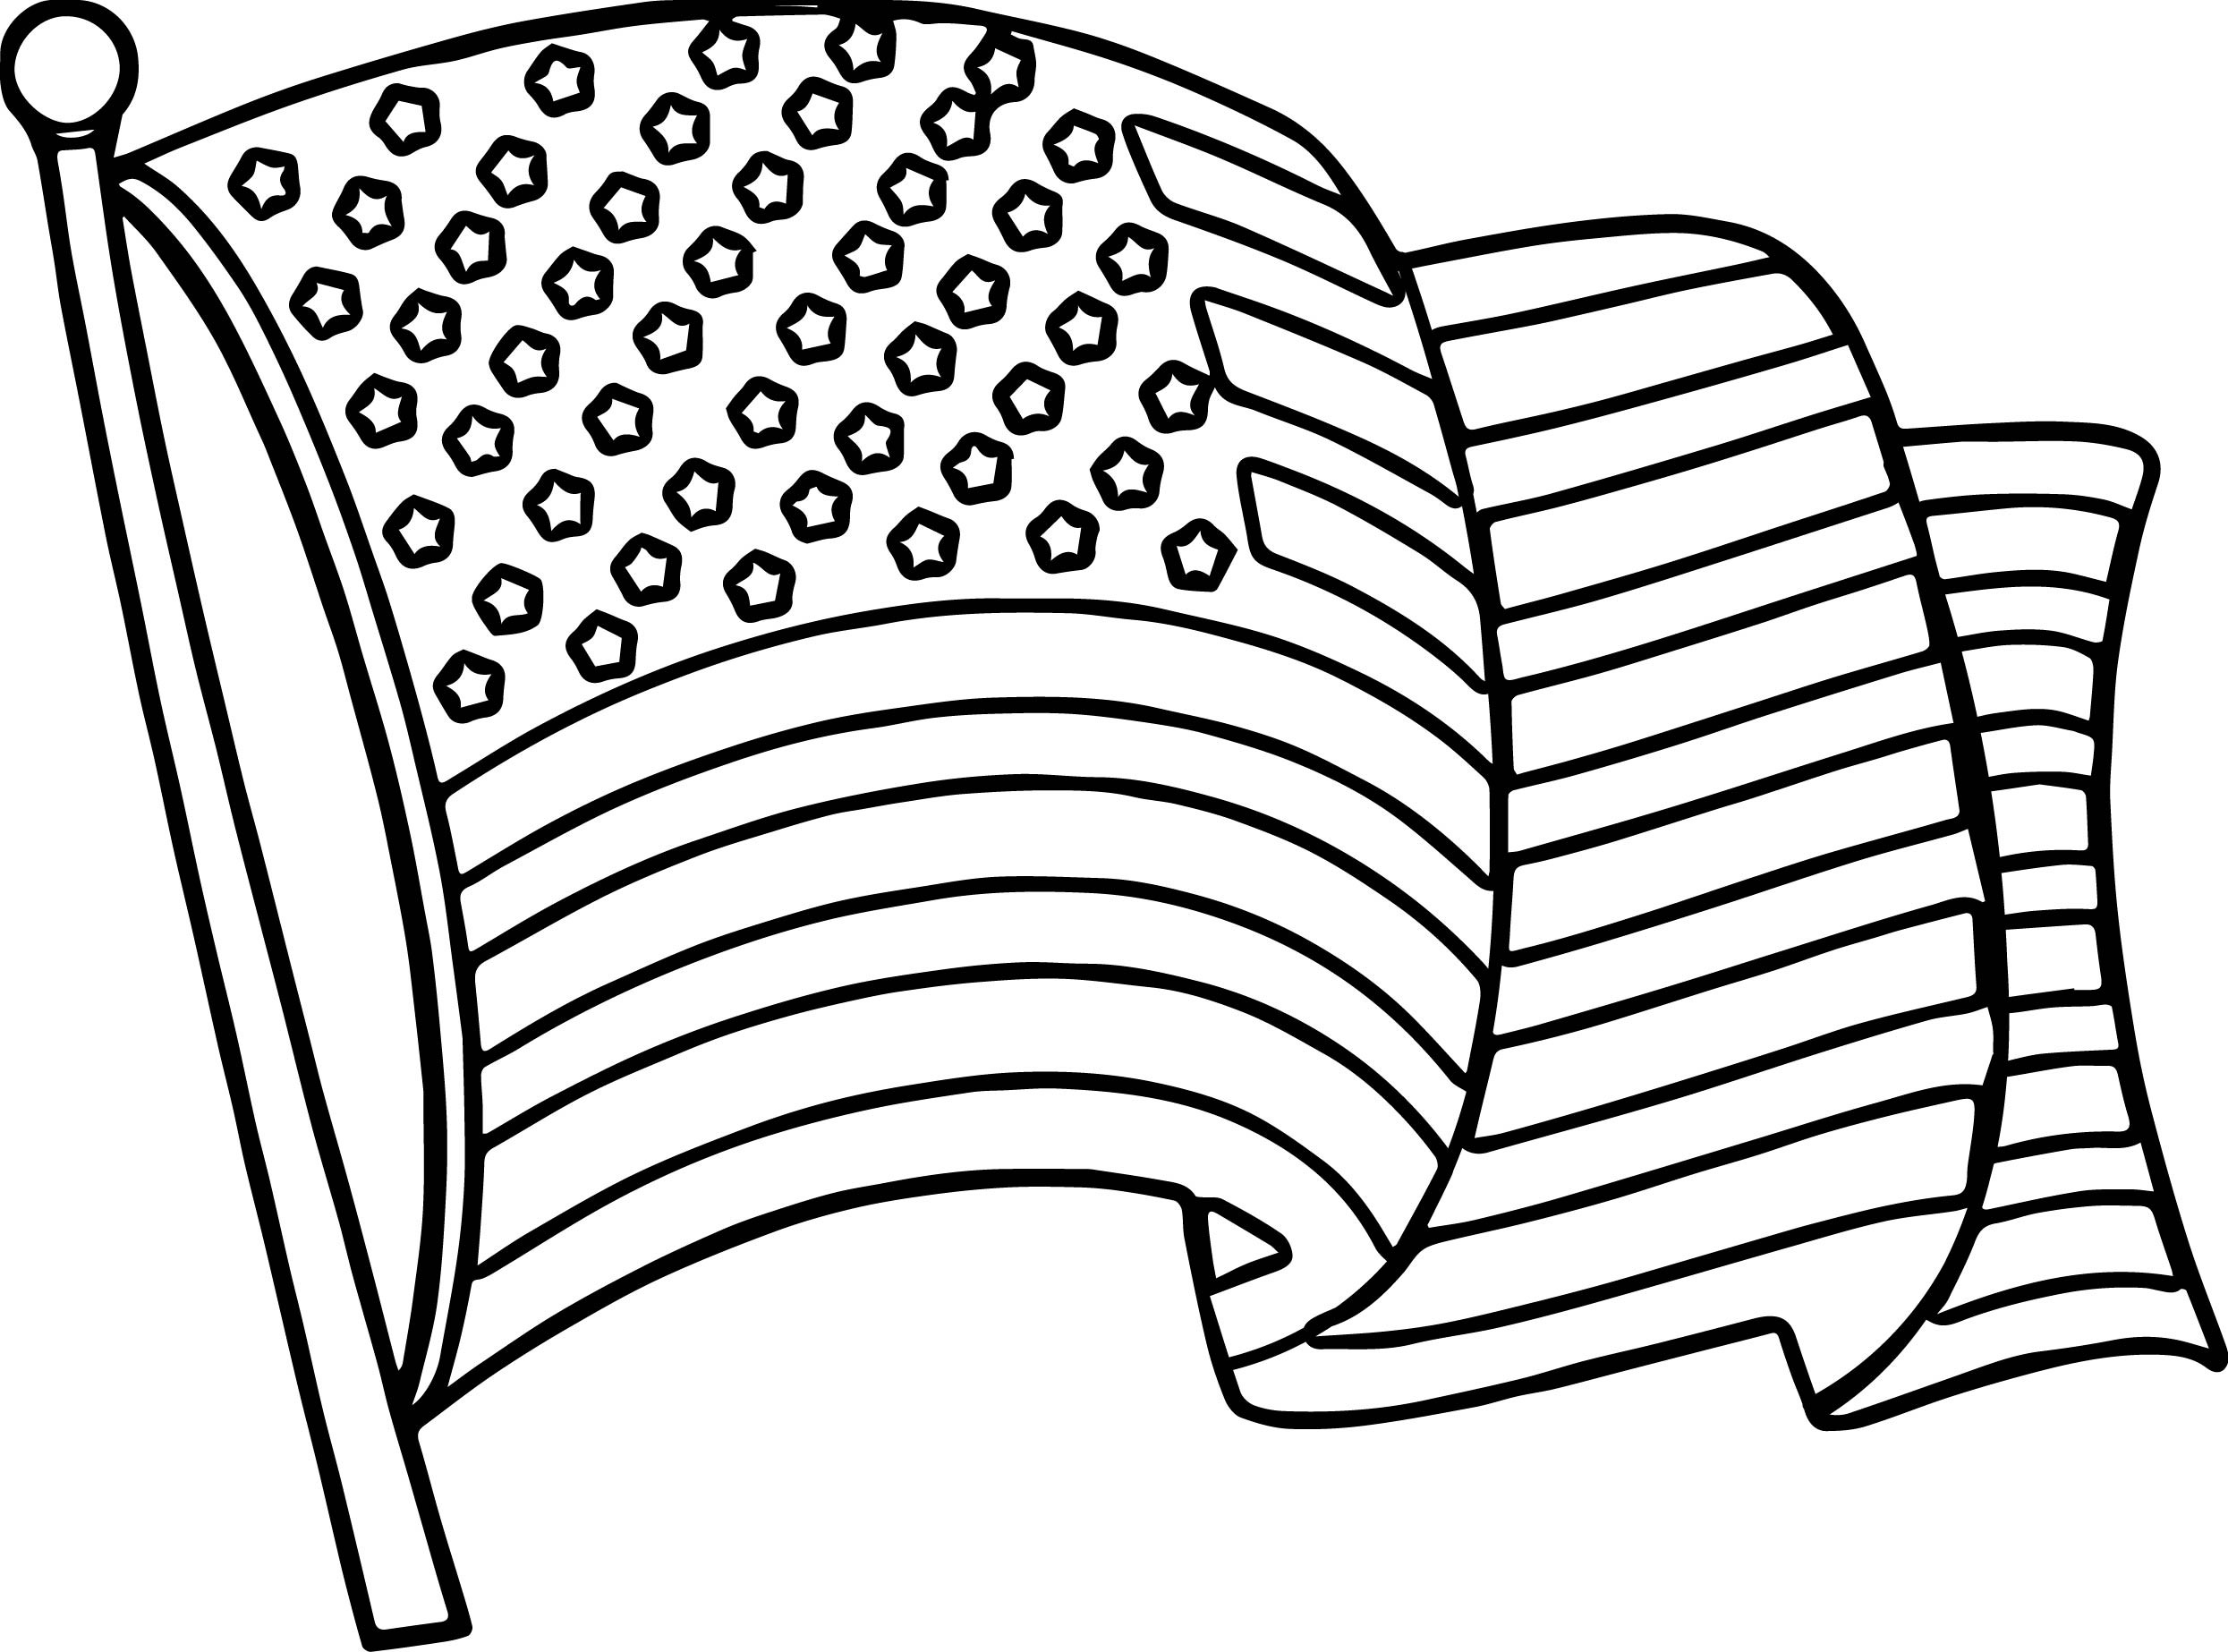 2490x1846 Flag Coloring Page Free Draw To Color